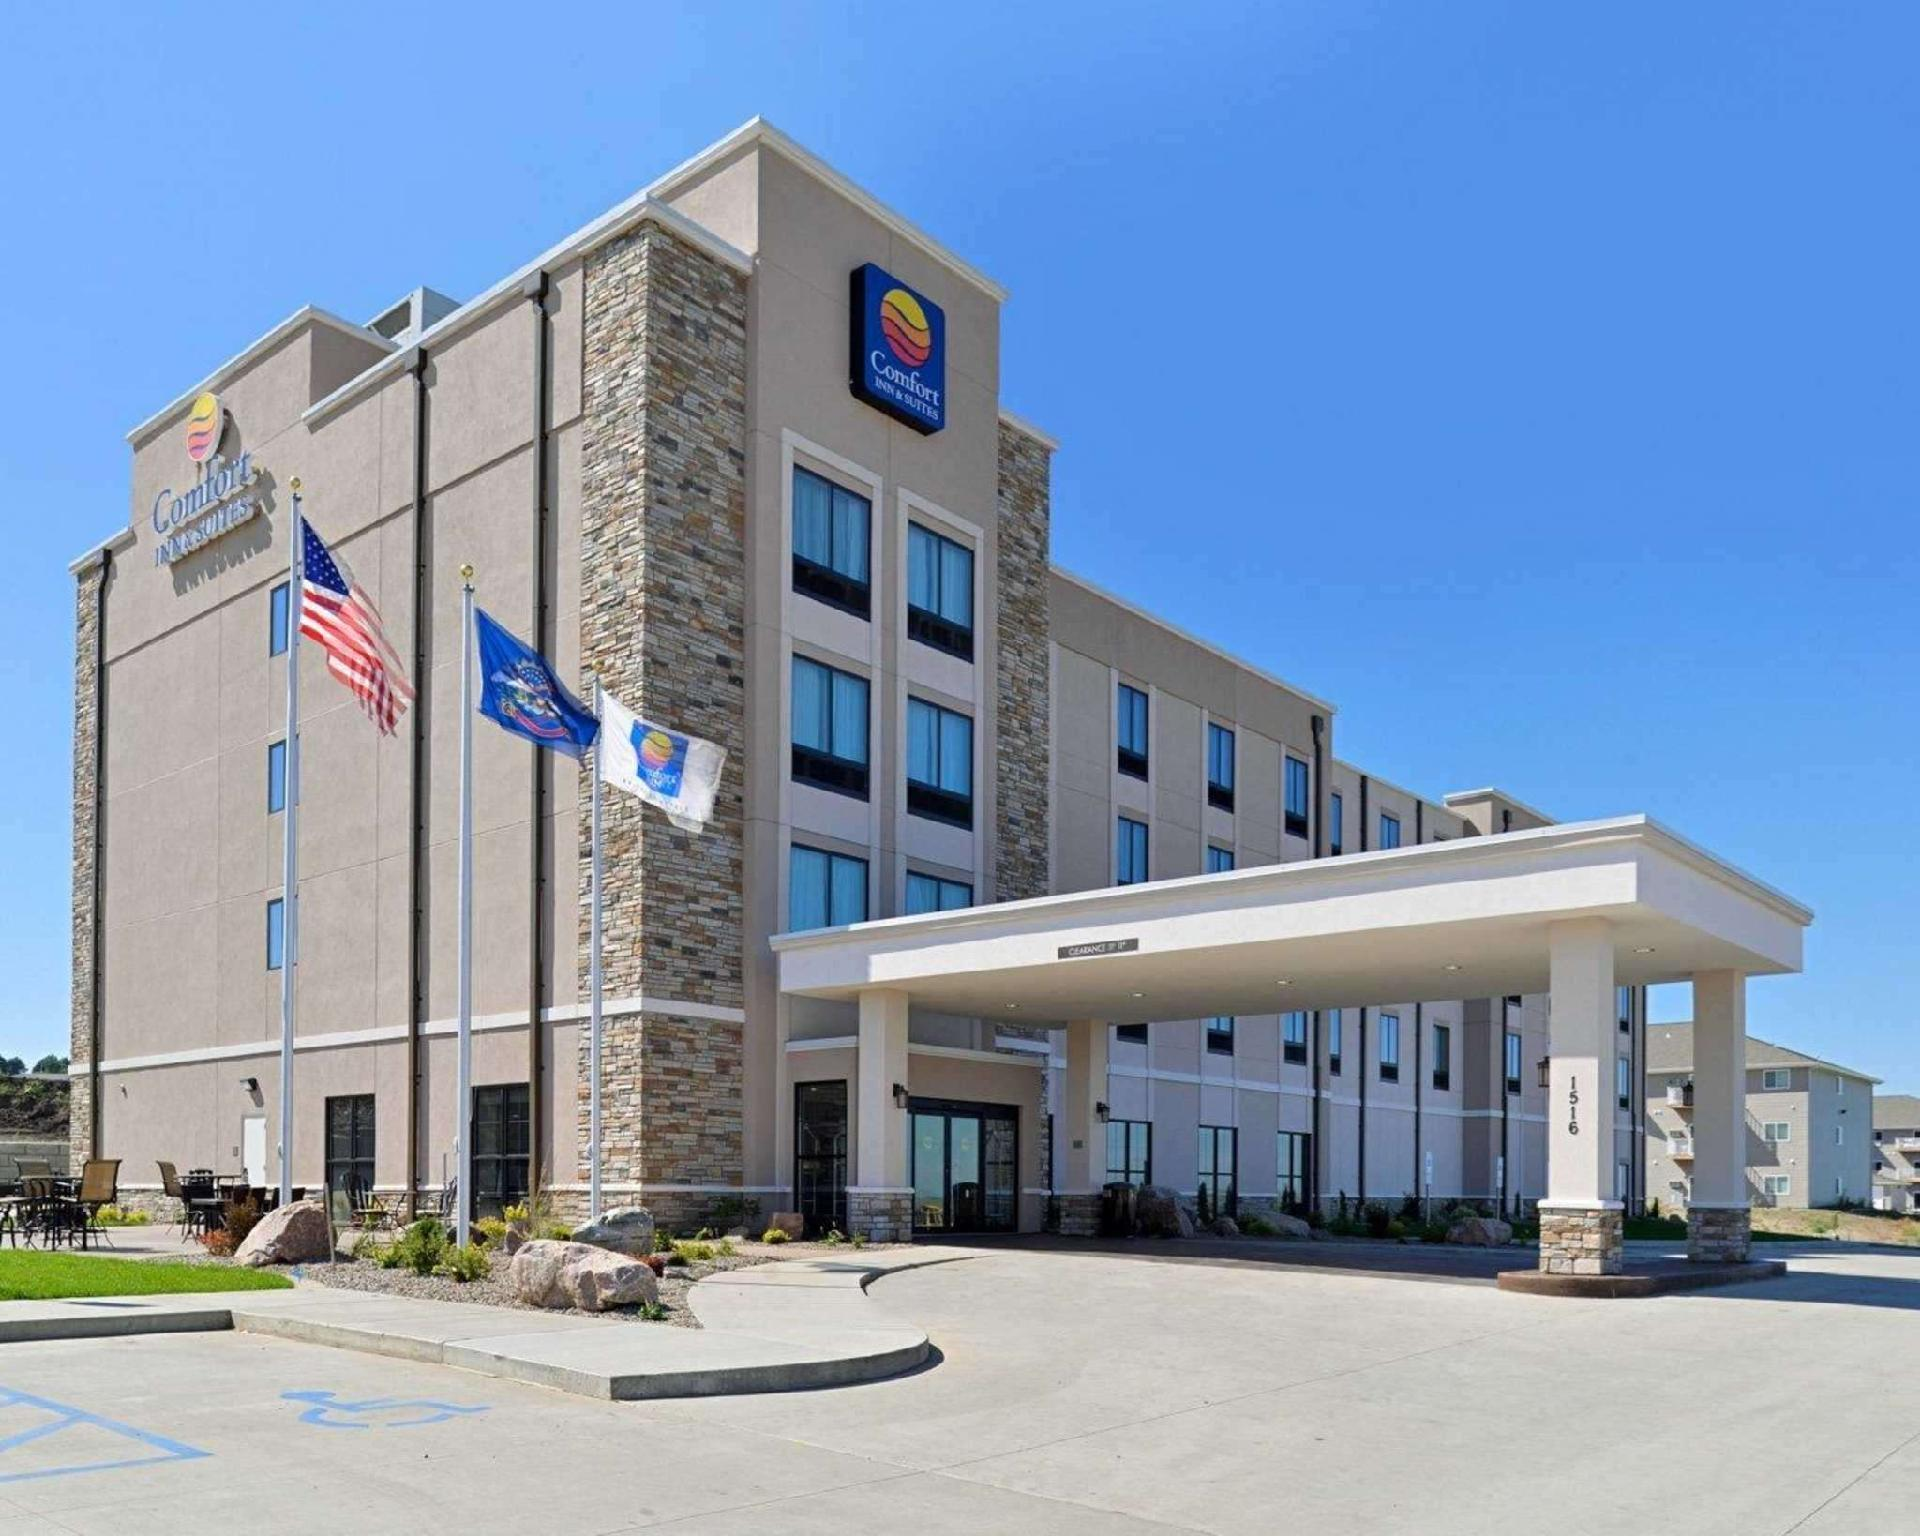 About Comfort Inn and Suites Mandan - Bismarck